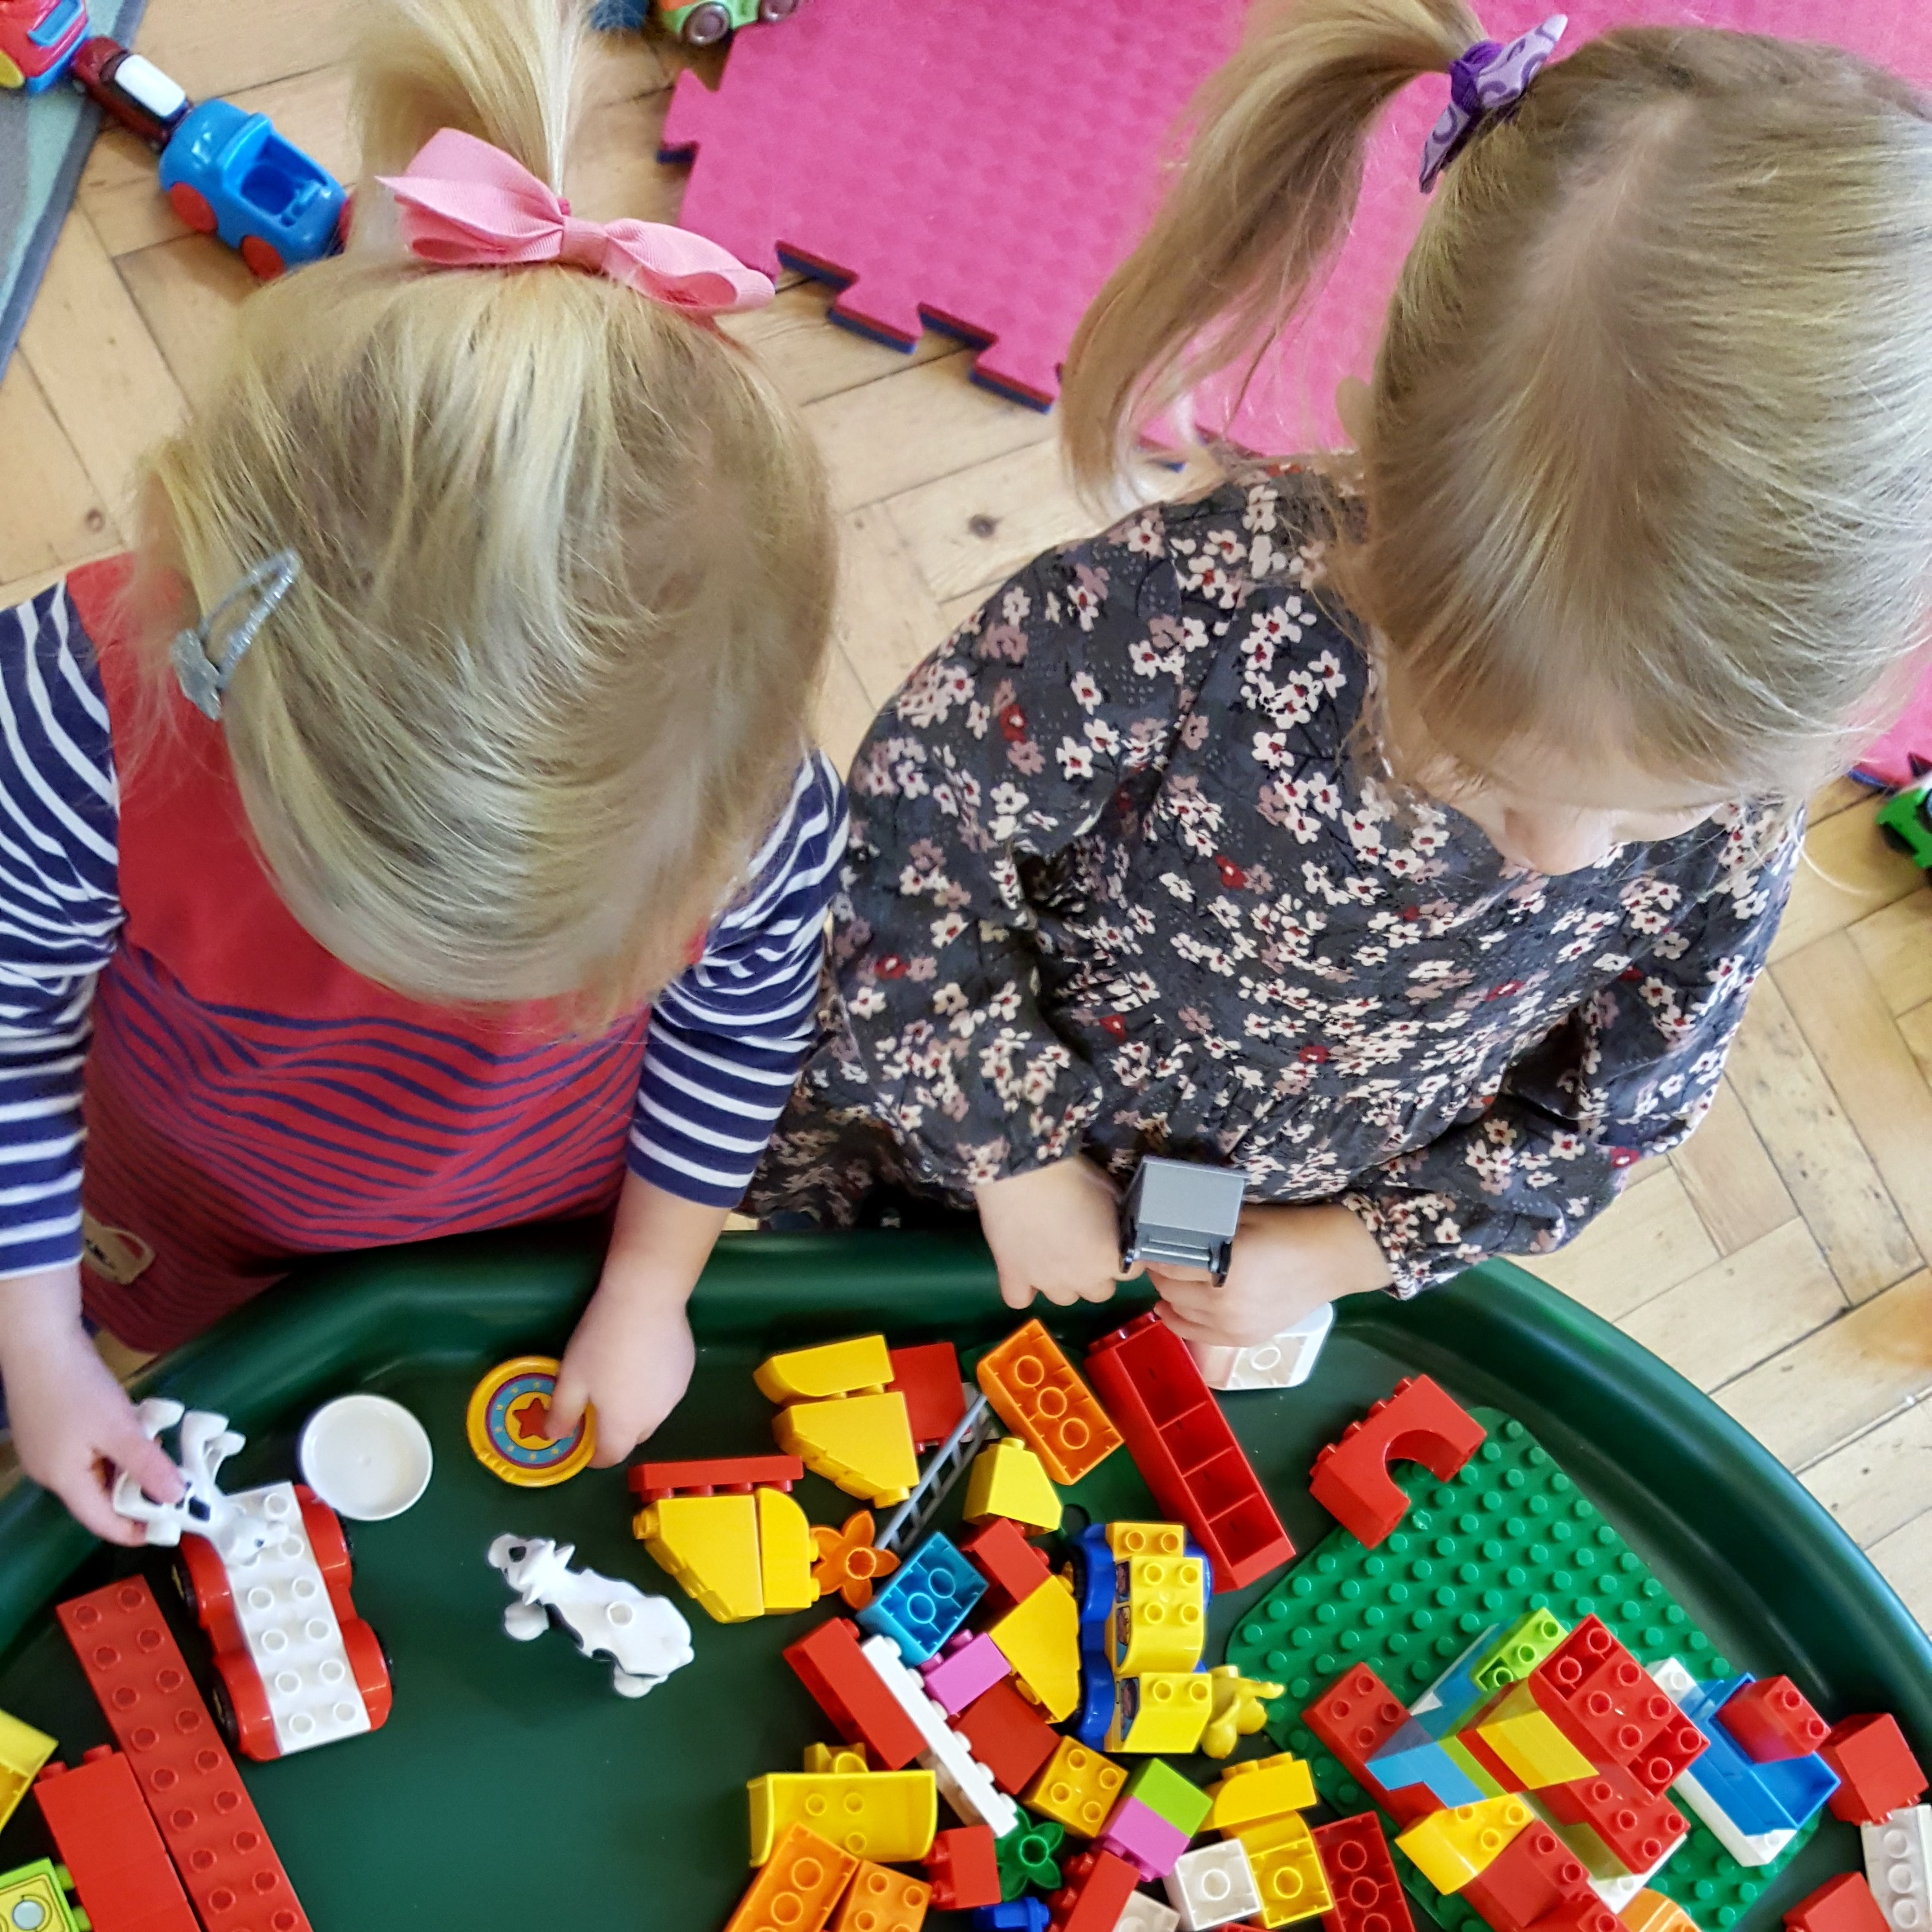 Buying Christmas gifts for twins without causing arguments